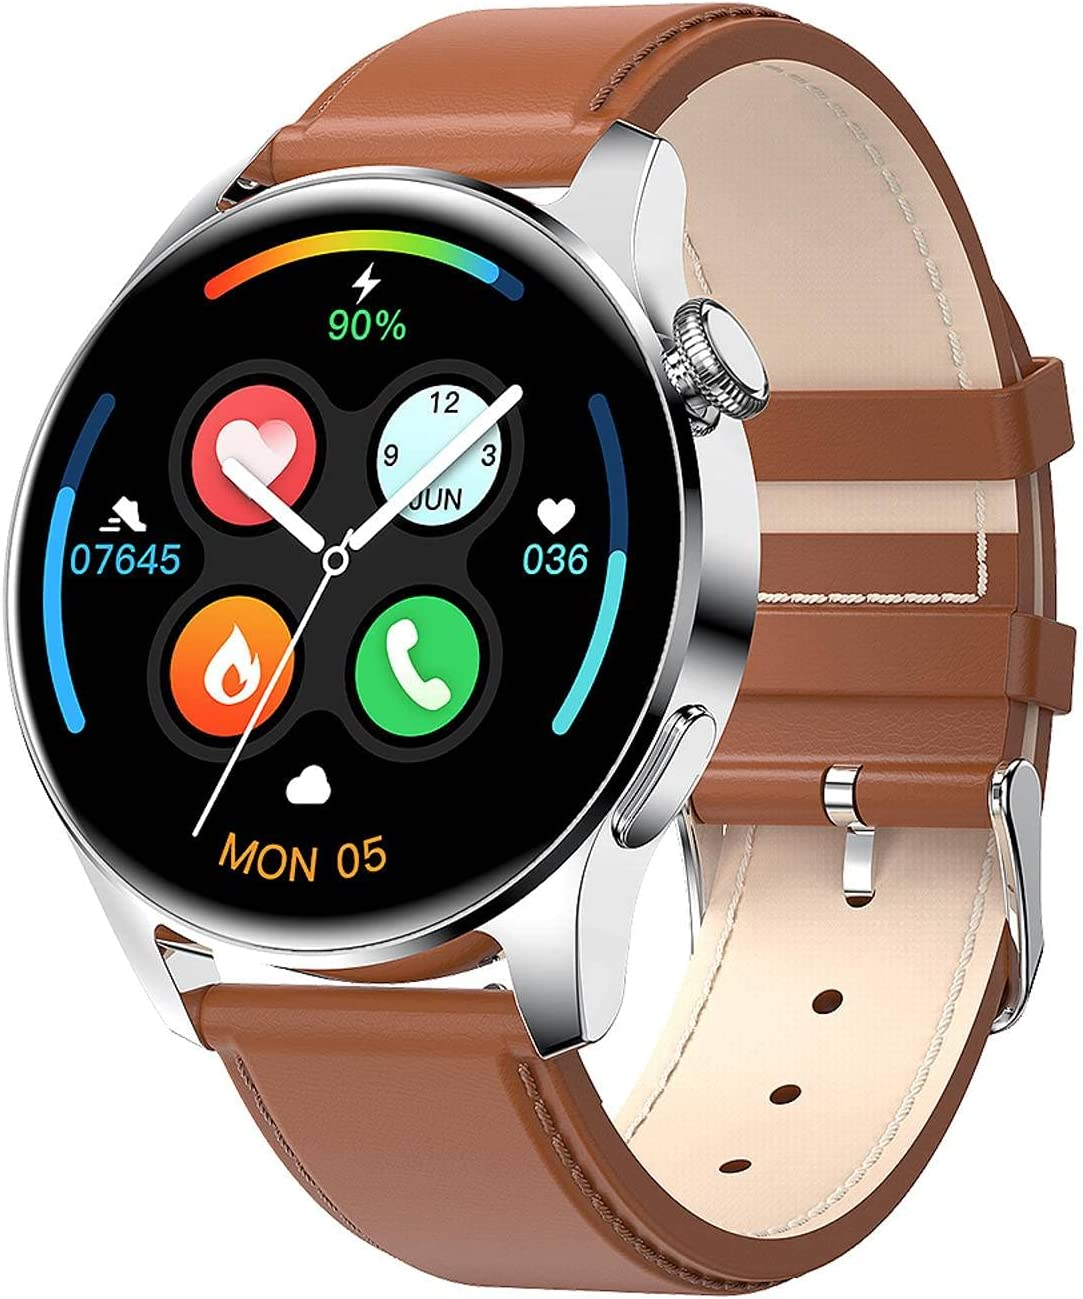 N\C Smart Watch Bluetooth Call Screen Smartwatch Touch Be super welcome Men's Spo Rare